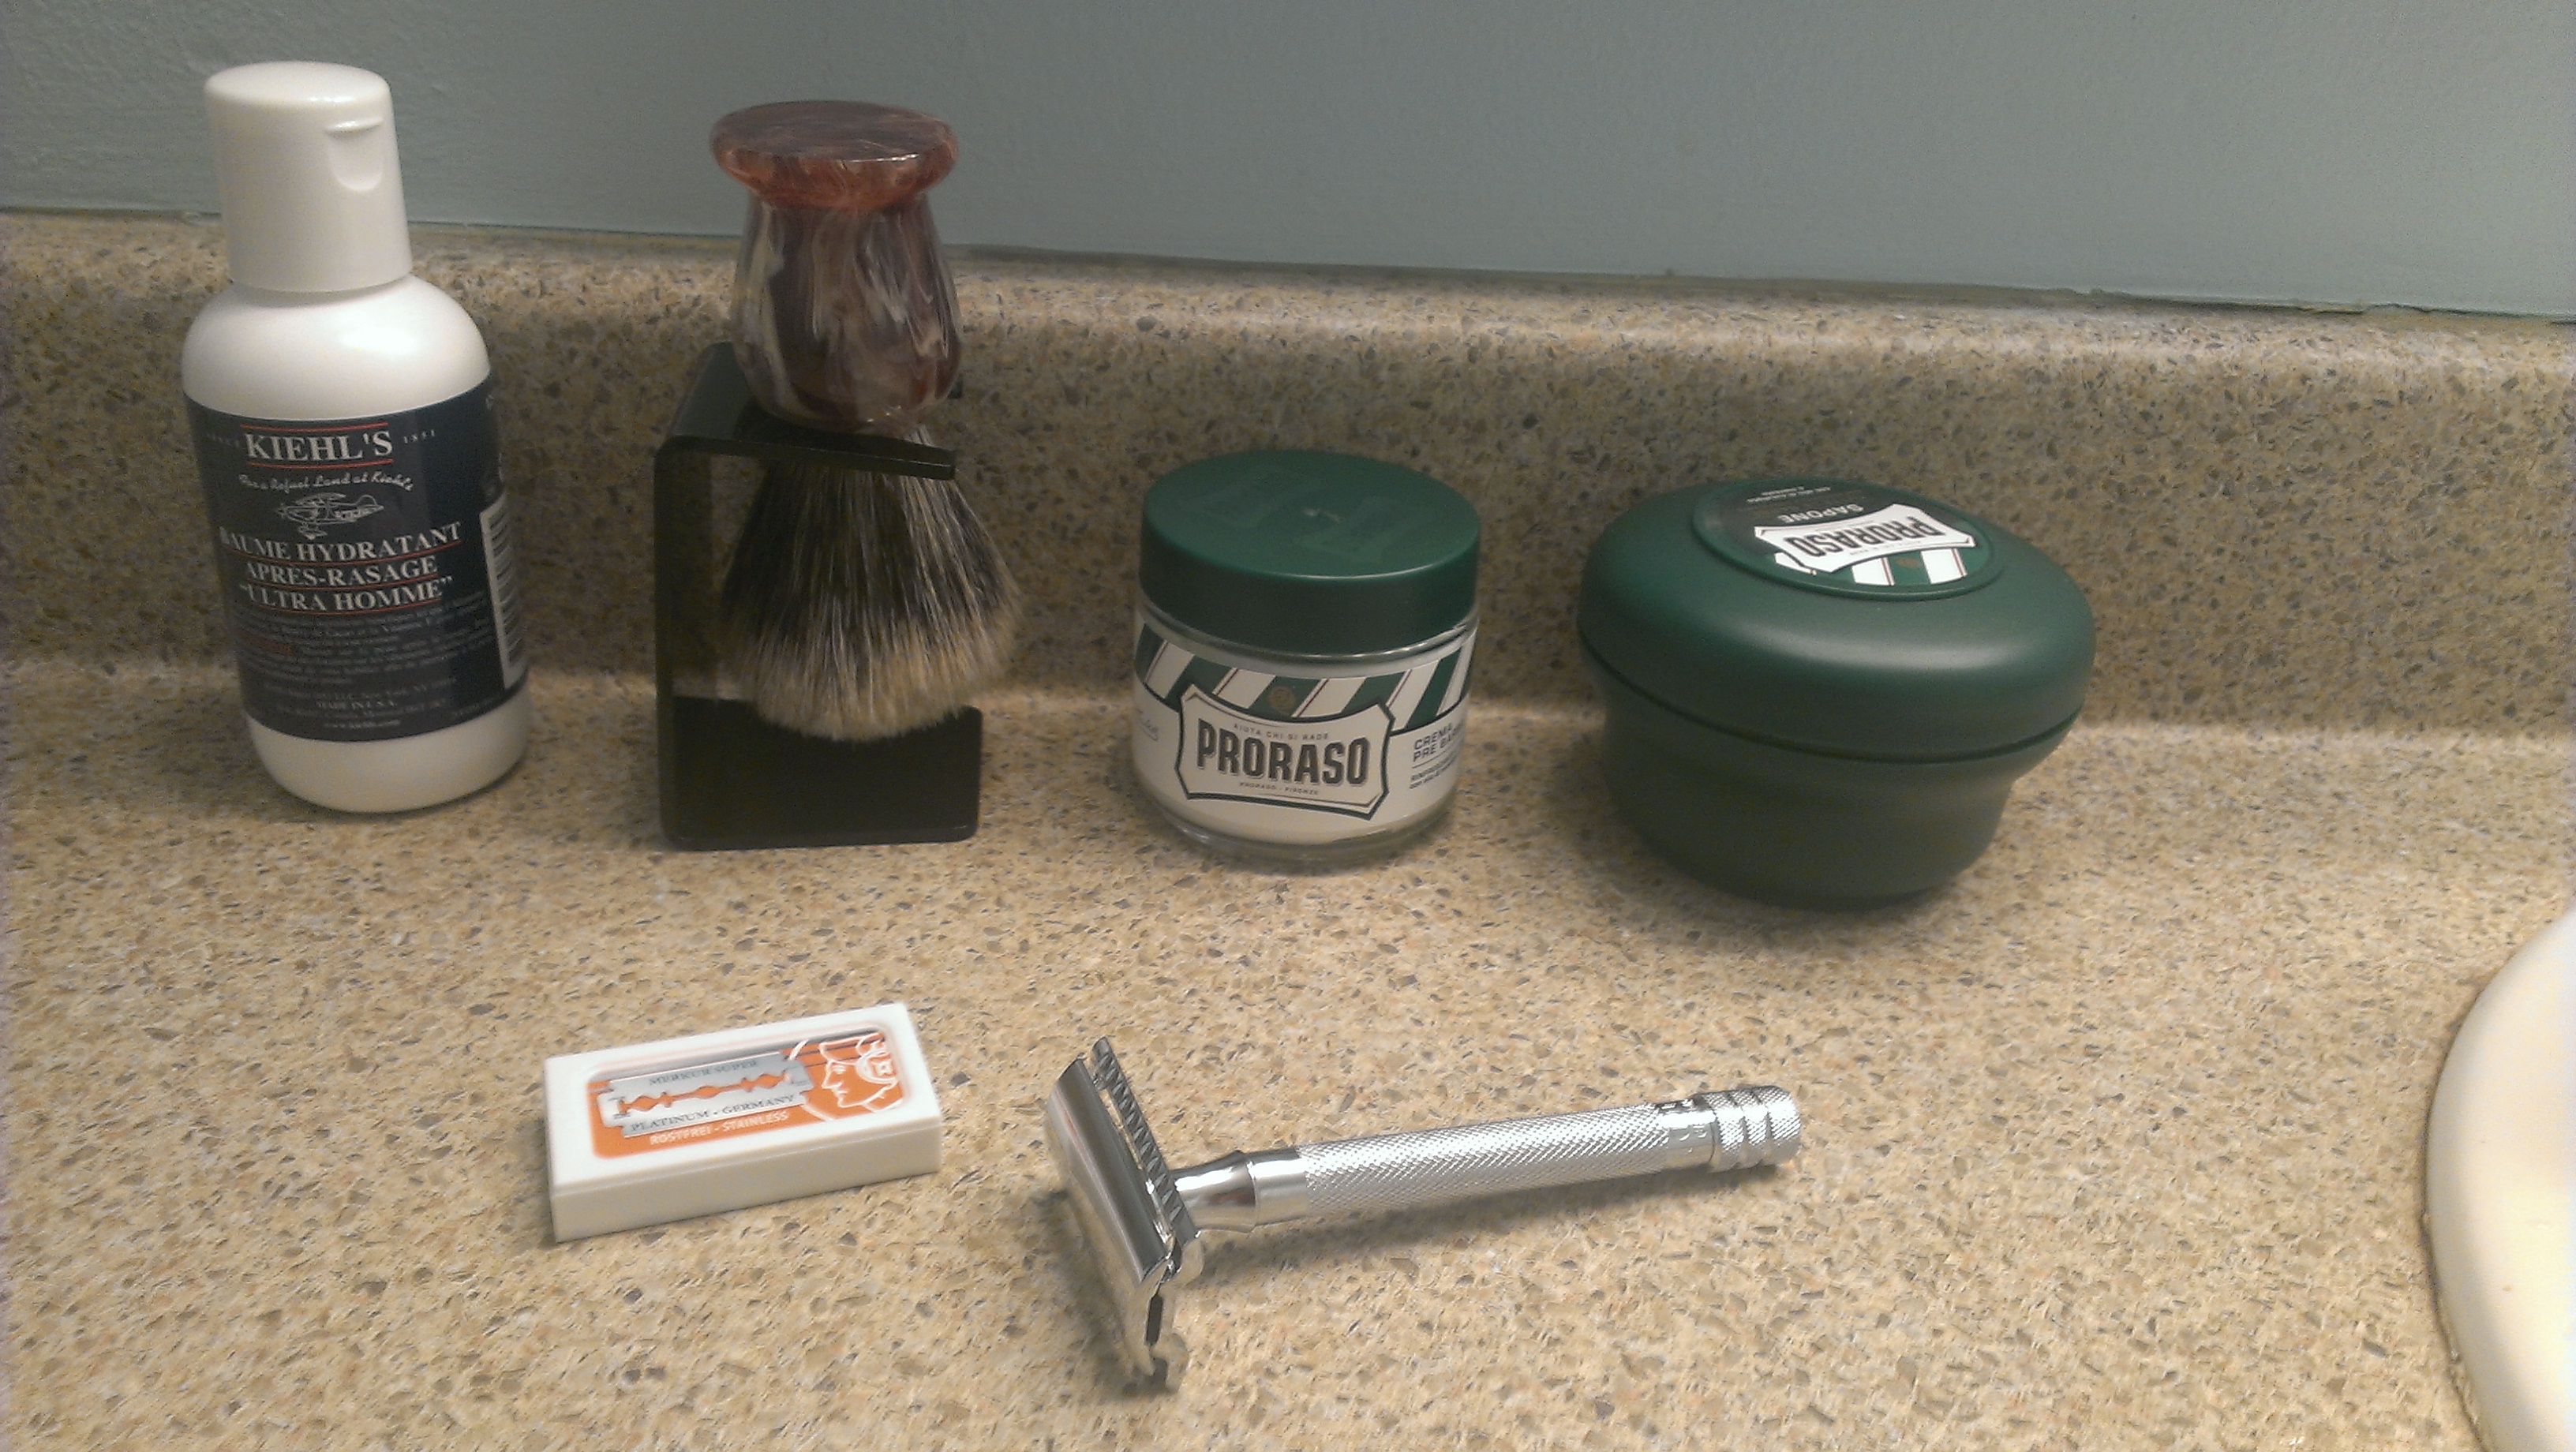 mazmaz general probably drugstore than aftershave scent leagues drug bottle store better part last terribly doesnt sandalwood long overpowering cheap more best either premium still charge theyll great value below photo money brushes razors shelf arent offerings dont that sells somewhere barbershop other really using products prorasos their shave green